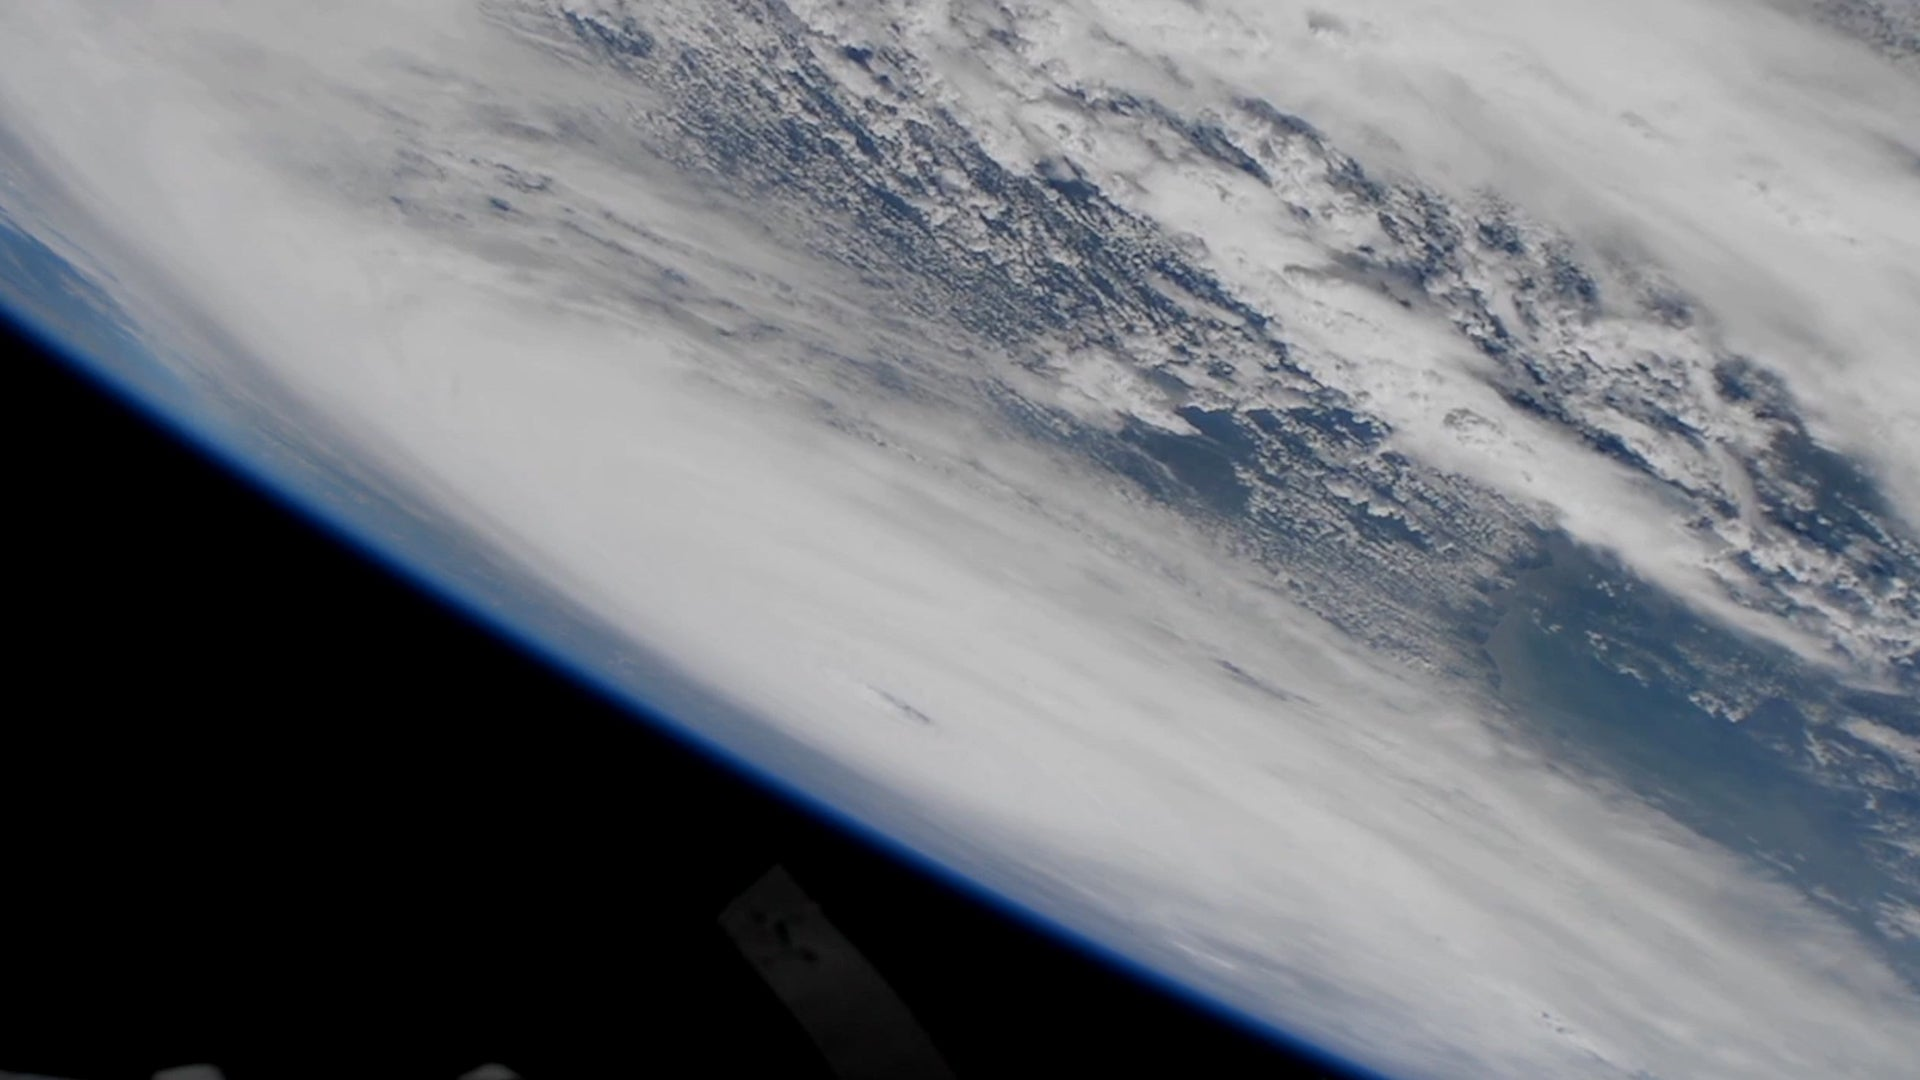 ISS Astronauts' Out-of-This-World View of Weather on Earth